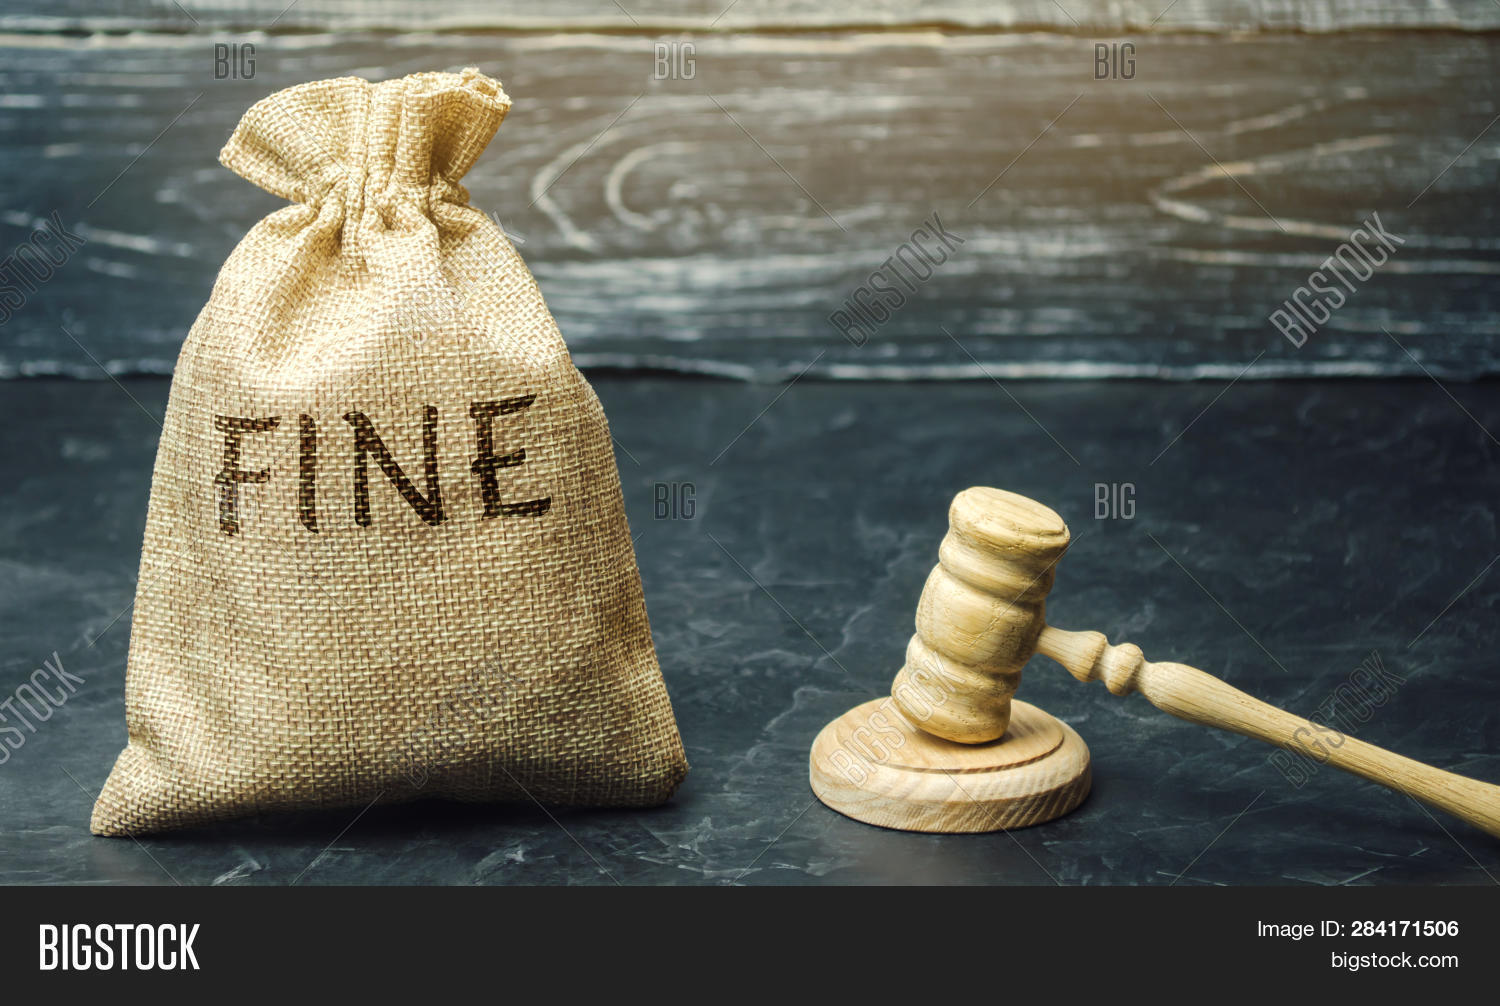 attorney,auction,authority,background,bail,bankruptcy,bidding,bribe,cash,compensation,concept,court,crime,criminal,dollar,fee,finance,financial,fine,fraud,gavel,hammer,judge,justice,law,lawsuit,lawyer,legal,legislation,mischief,money,mortgage,mulct,offence,pay,payment,penalty,punishment,table,tax,traffic,verdict,violation,wooden